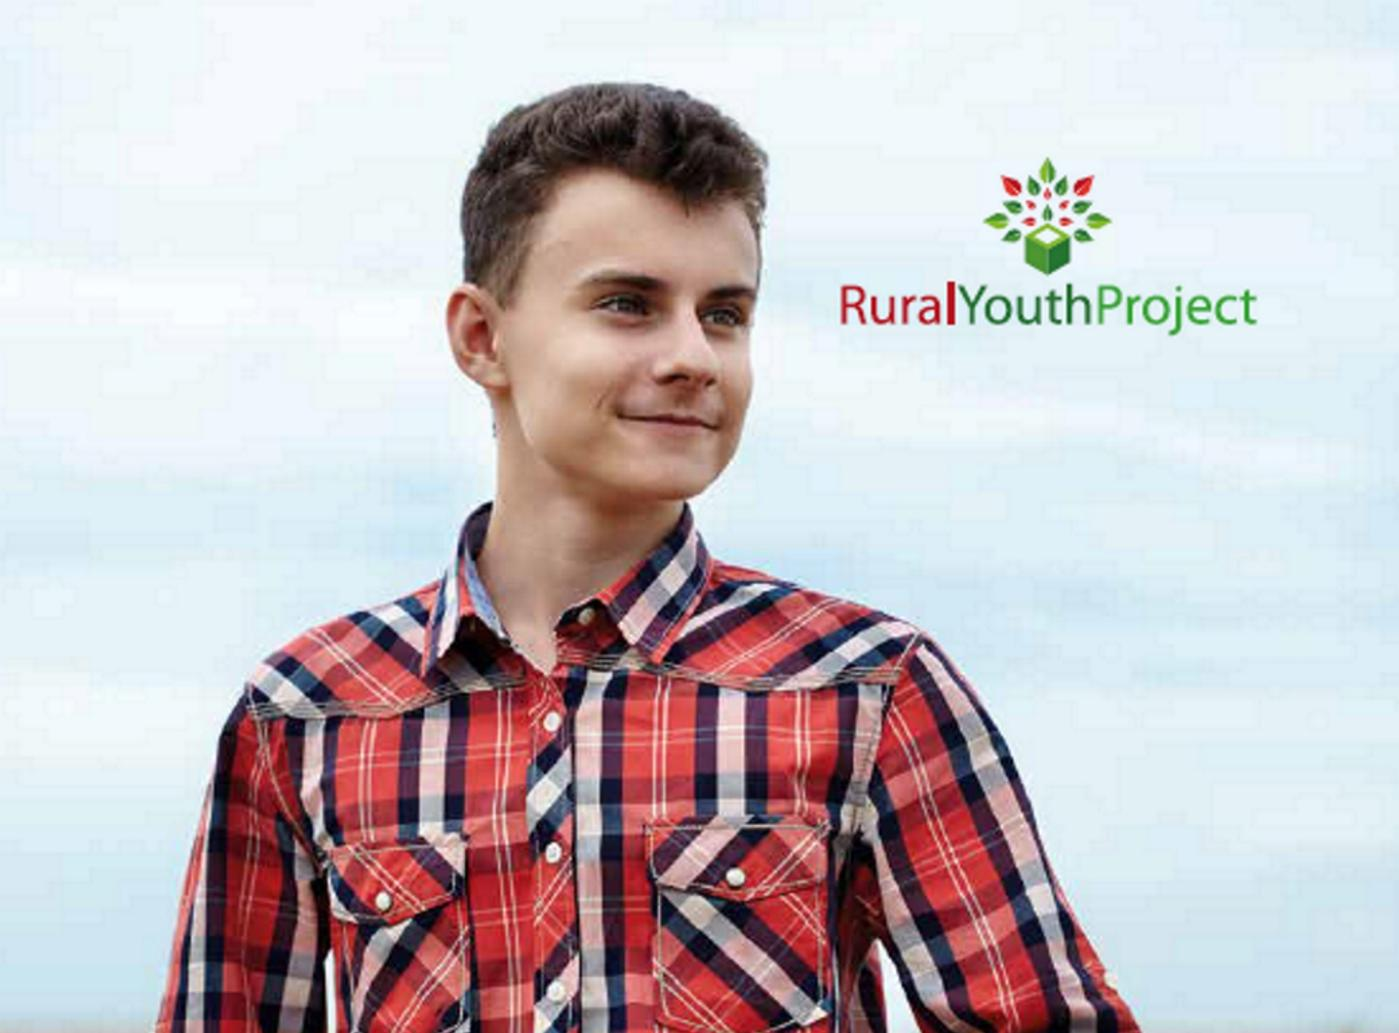 Rural youth project survey results